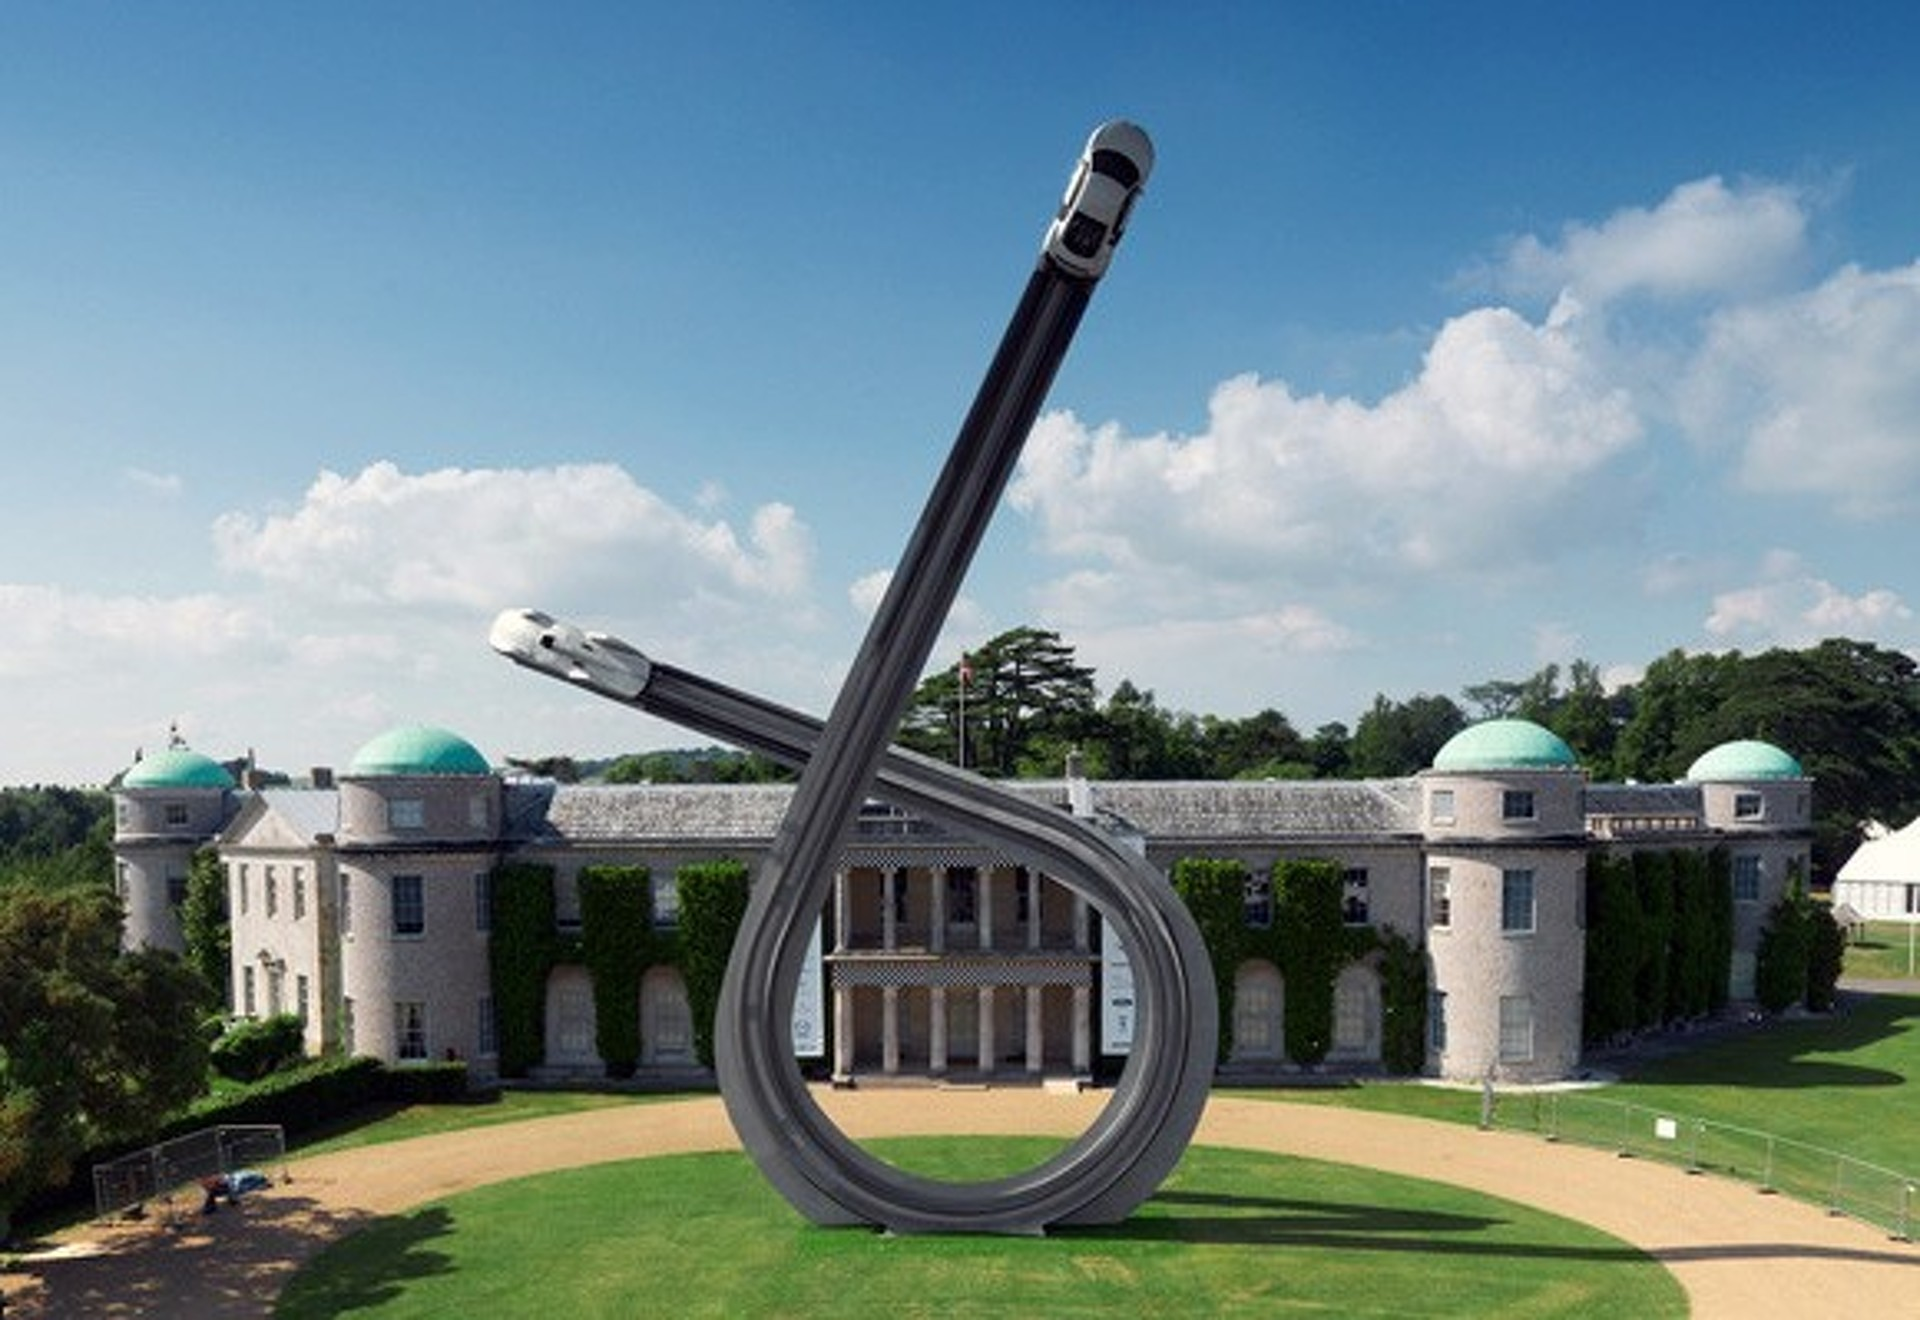 The Goodwood FoS -The Burning Man of Burning Rubber